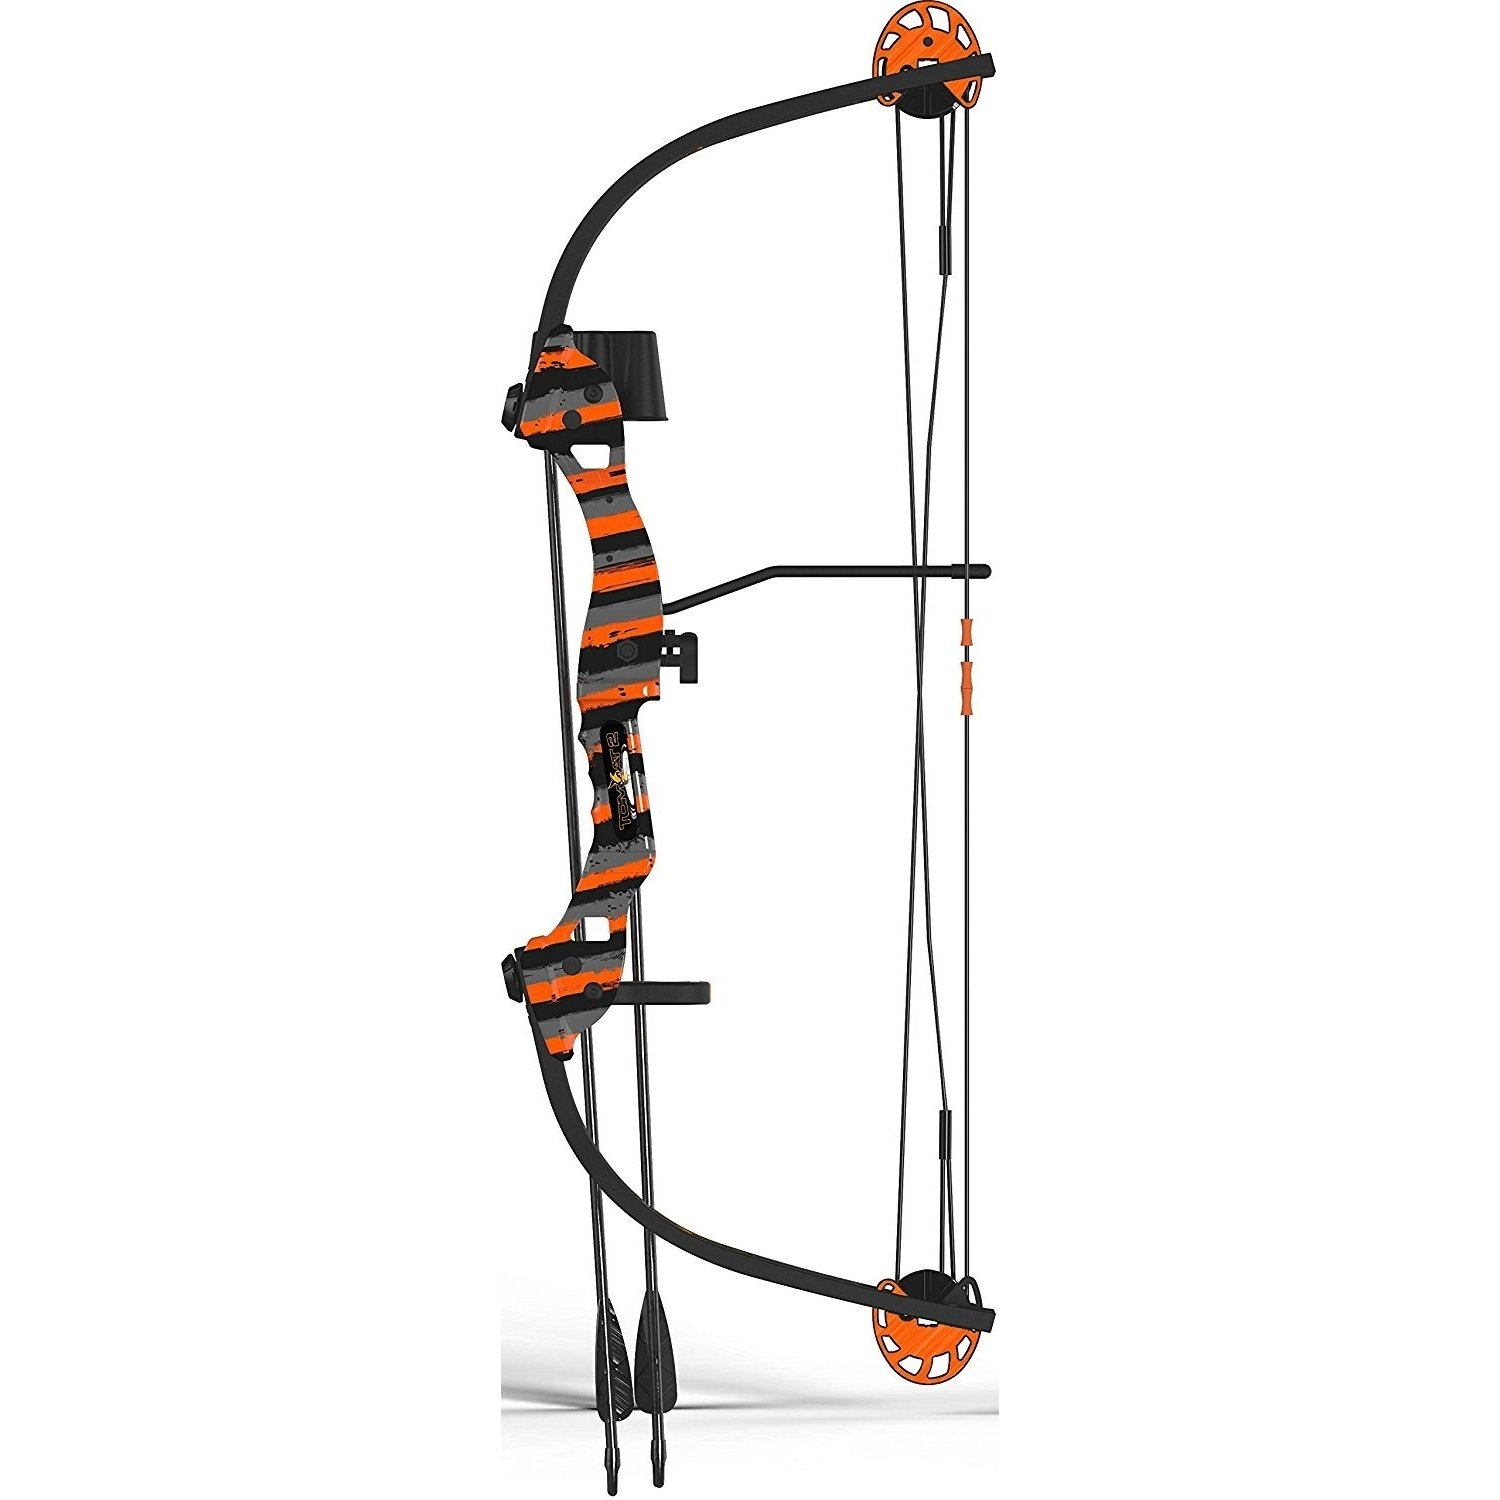 By-Arnett Bow Compound, Tomcat-2 Youth Archery Set Girls Compound Bow Kids, Orange